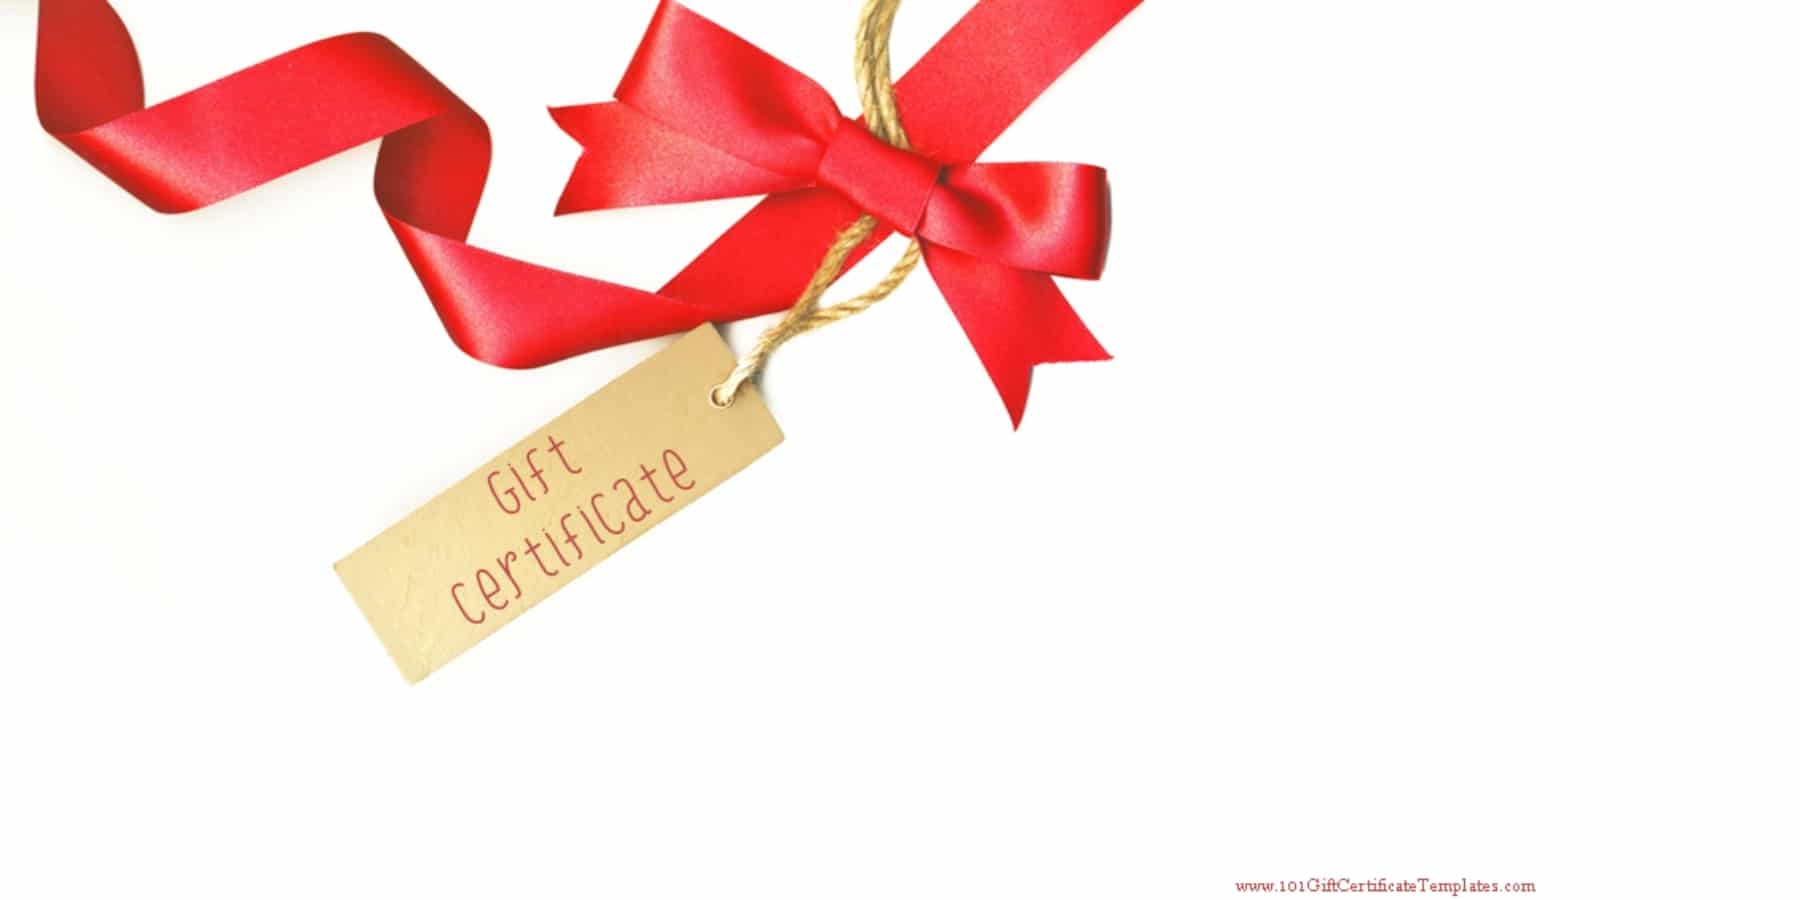 Printable gift certificate templates gift card which can be customized in any way with our gift card maker yelopaper